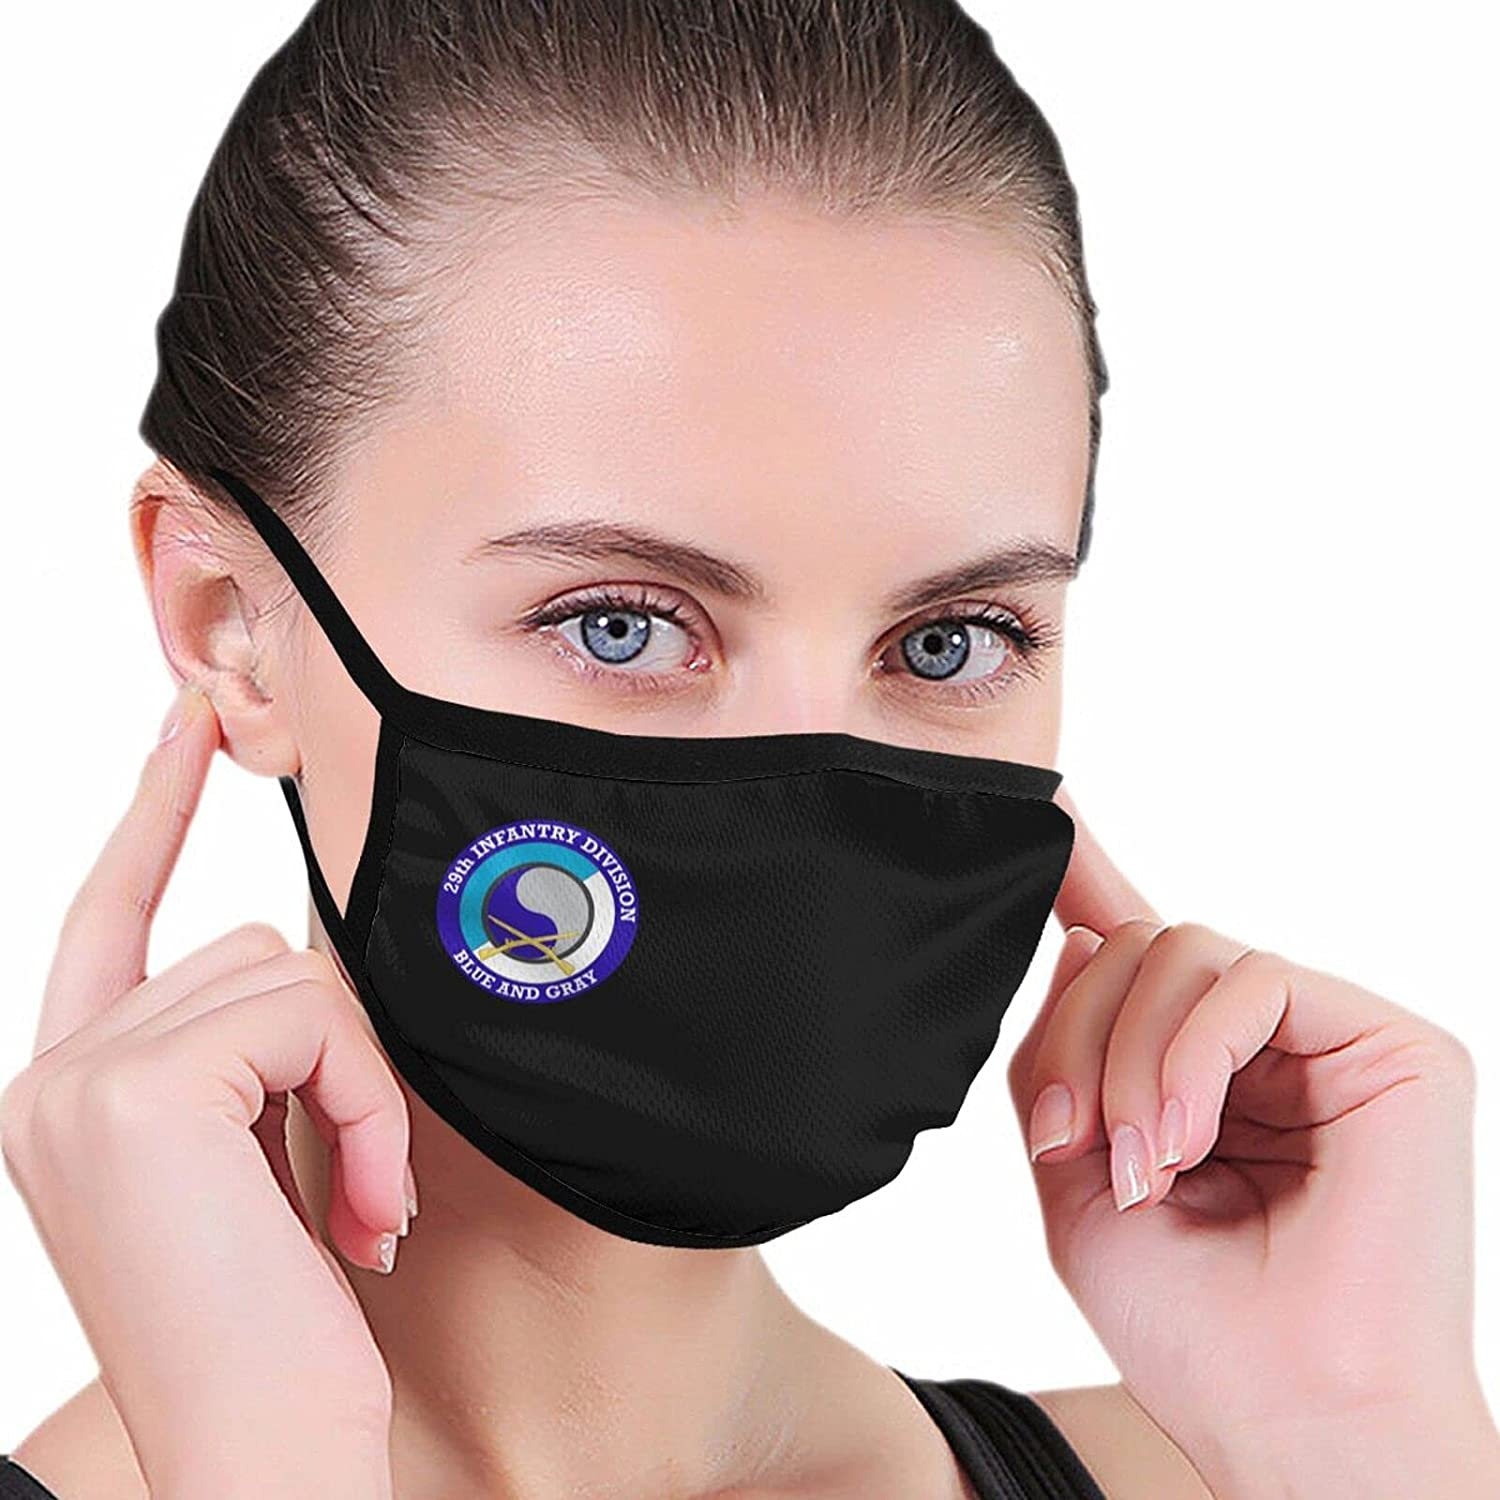 29th Infantry Division with Crossed Rifles Fashion Washable Breathable Reusable for Women Balaclava Face Mask Black